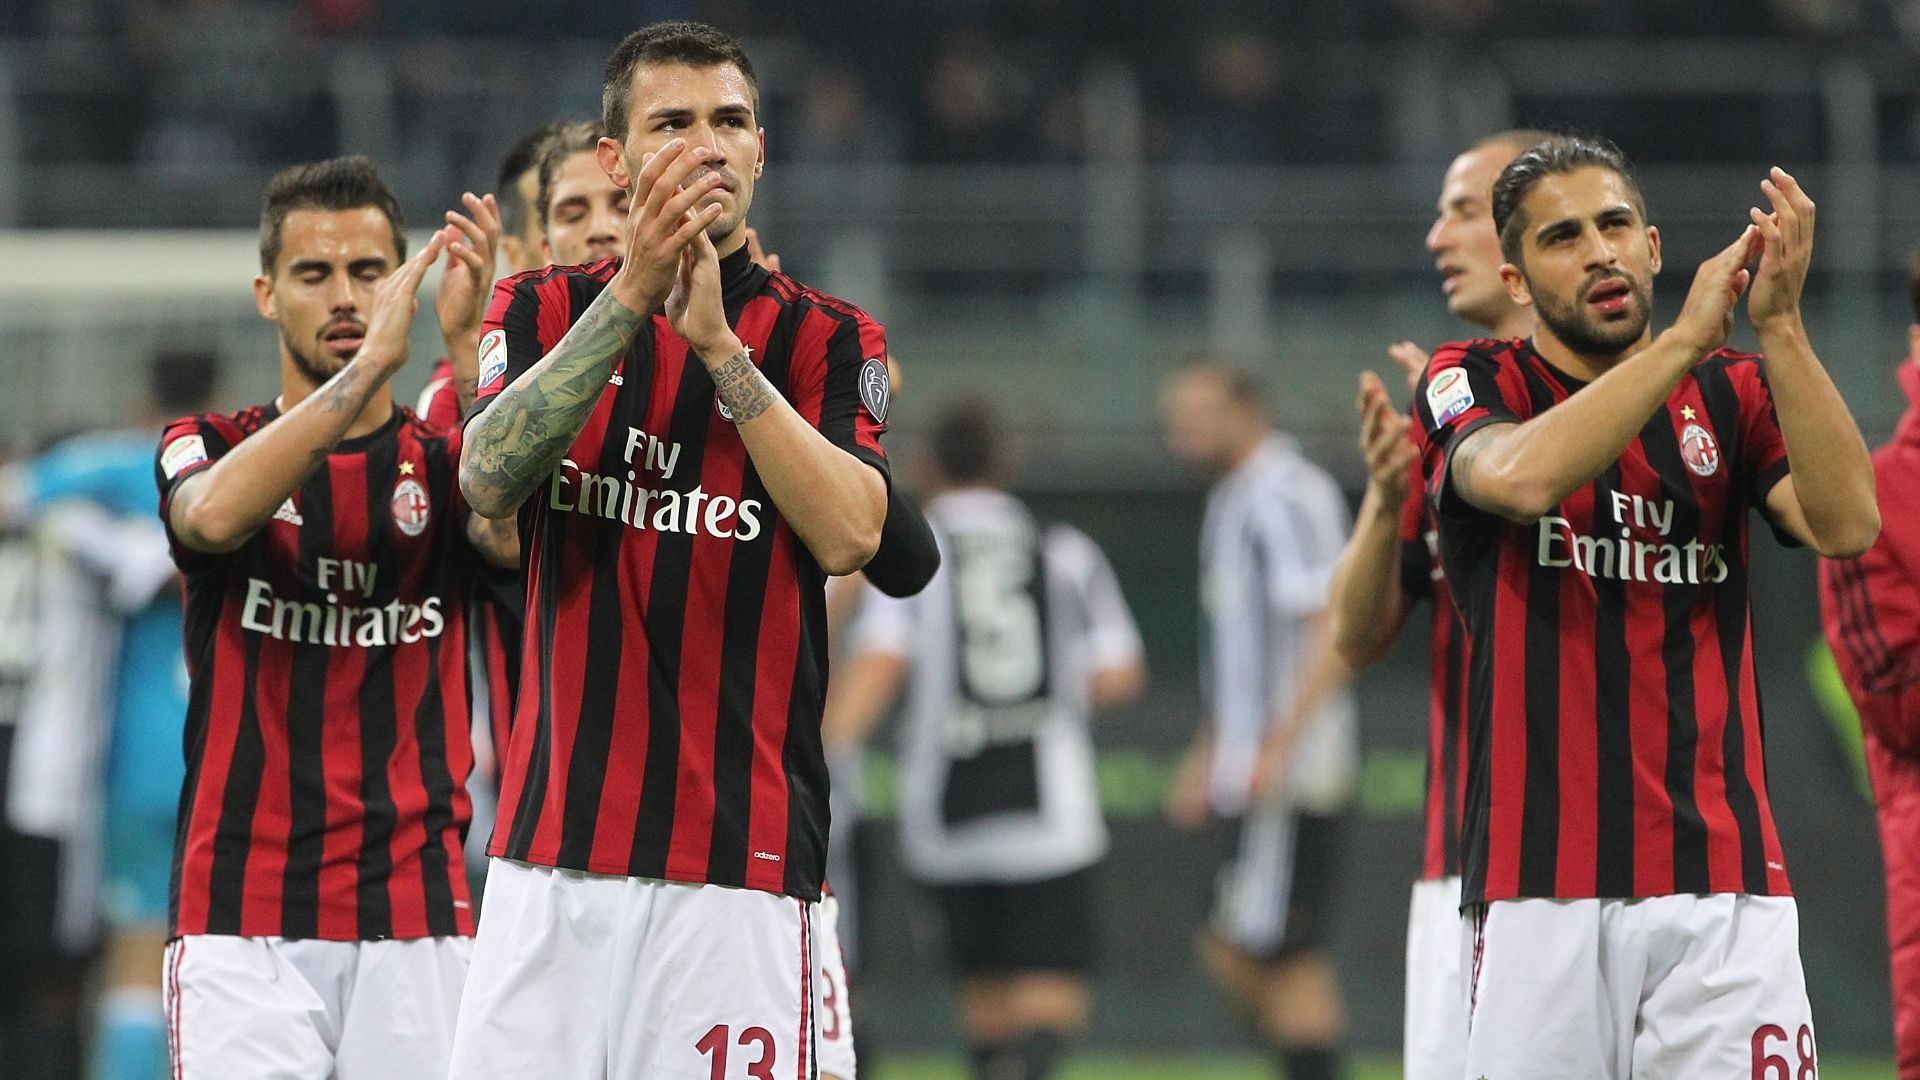 Marcotti: Why is Milan's future so uncertain?